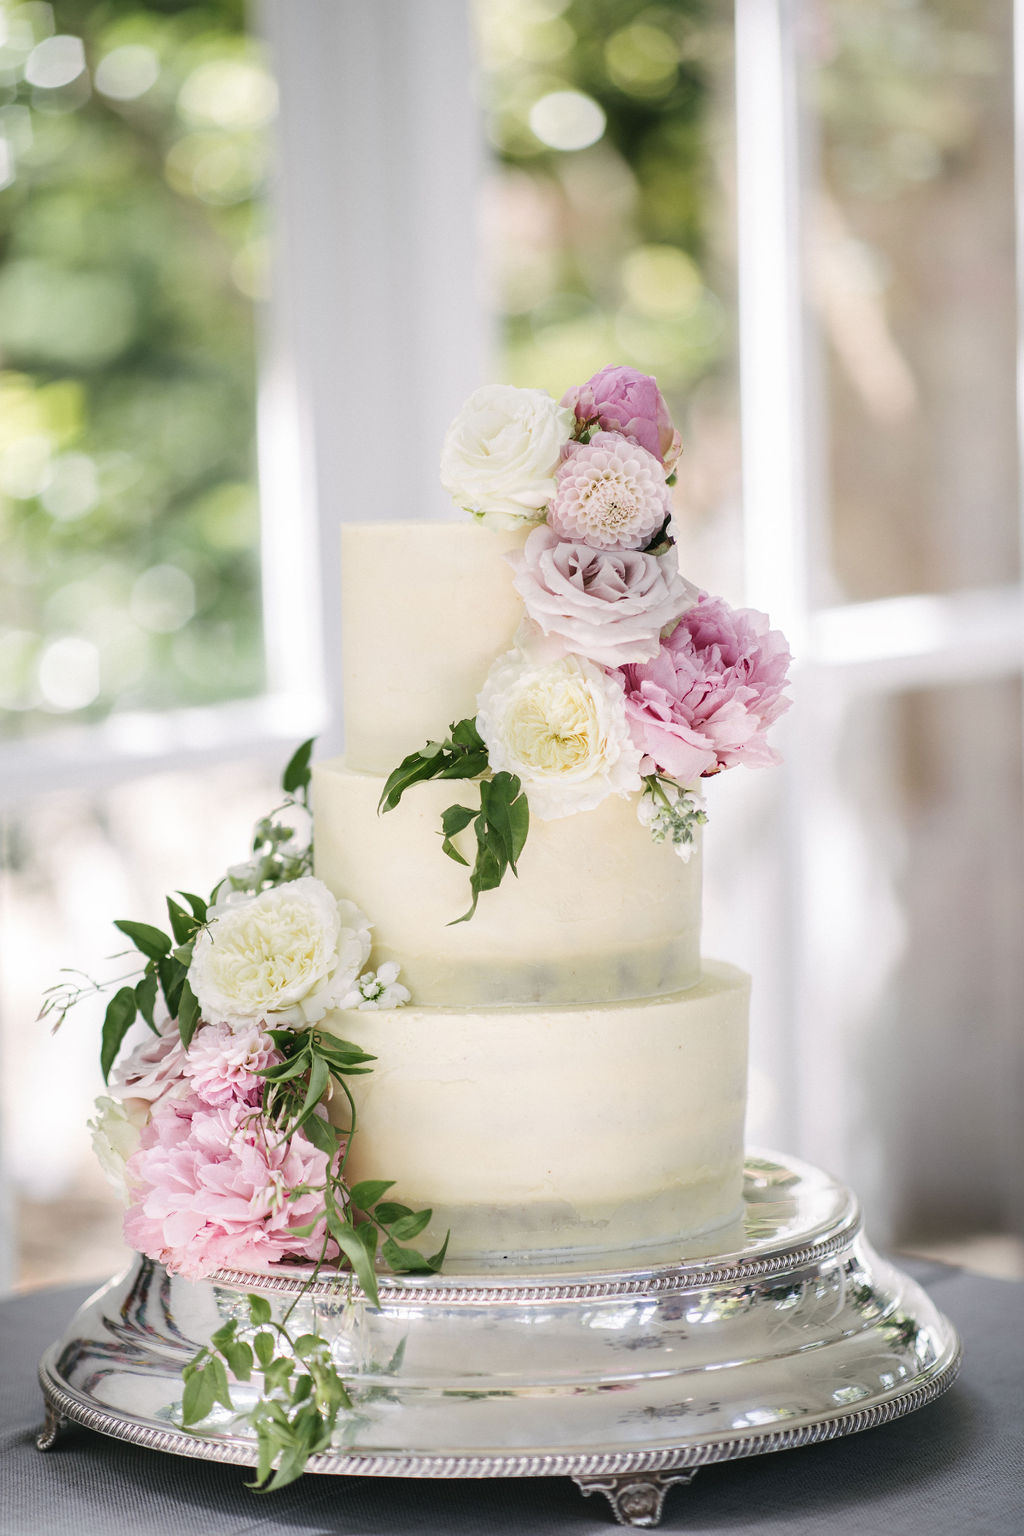 Modern elegant buttercream wedding cake decorated with Spring flowers. Photo by Kari Bellamy